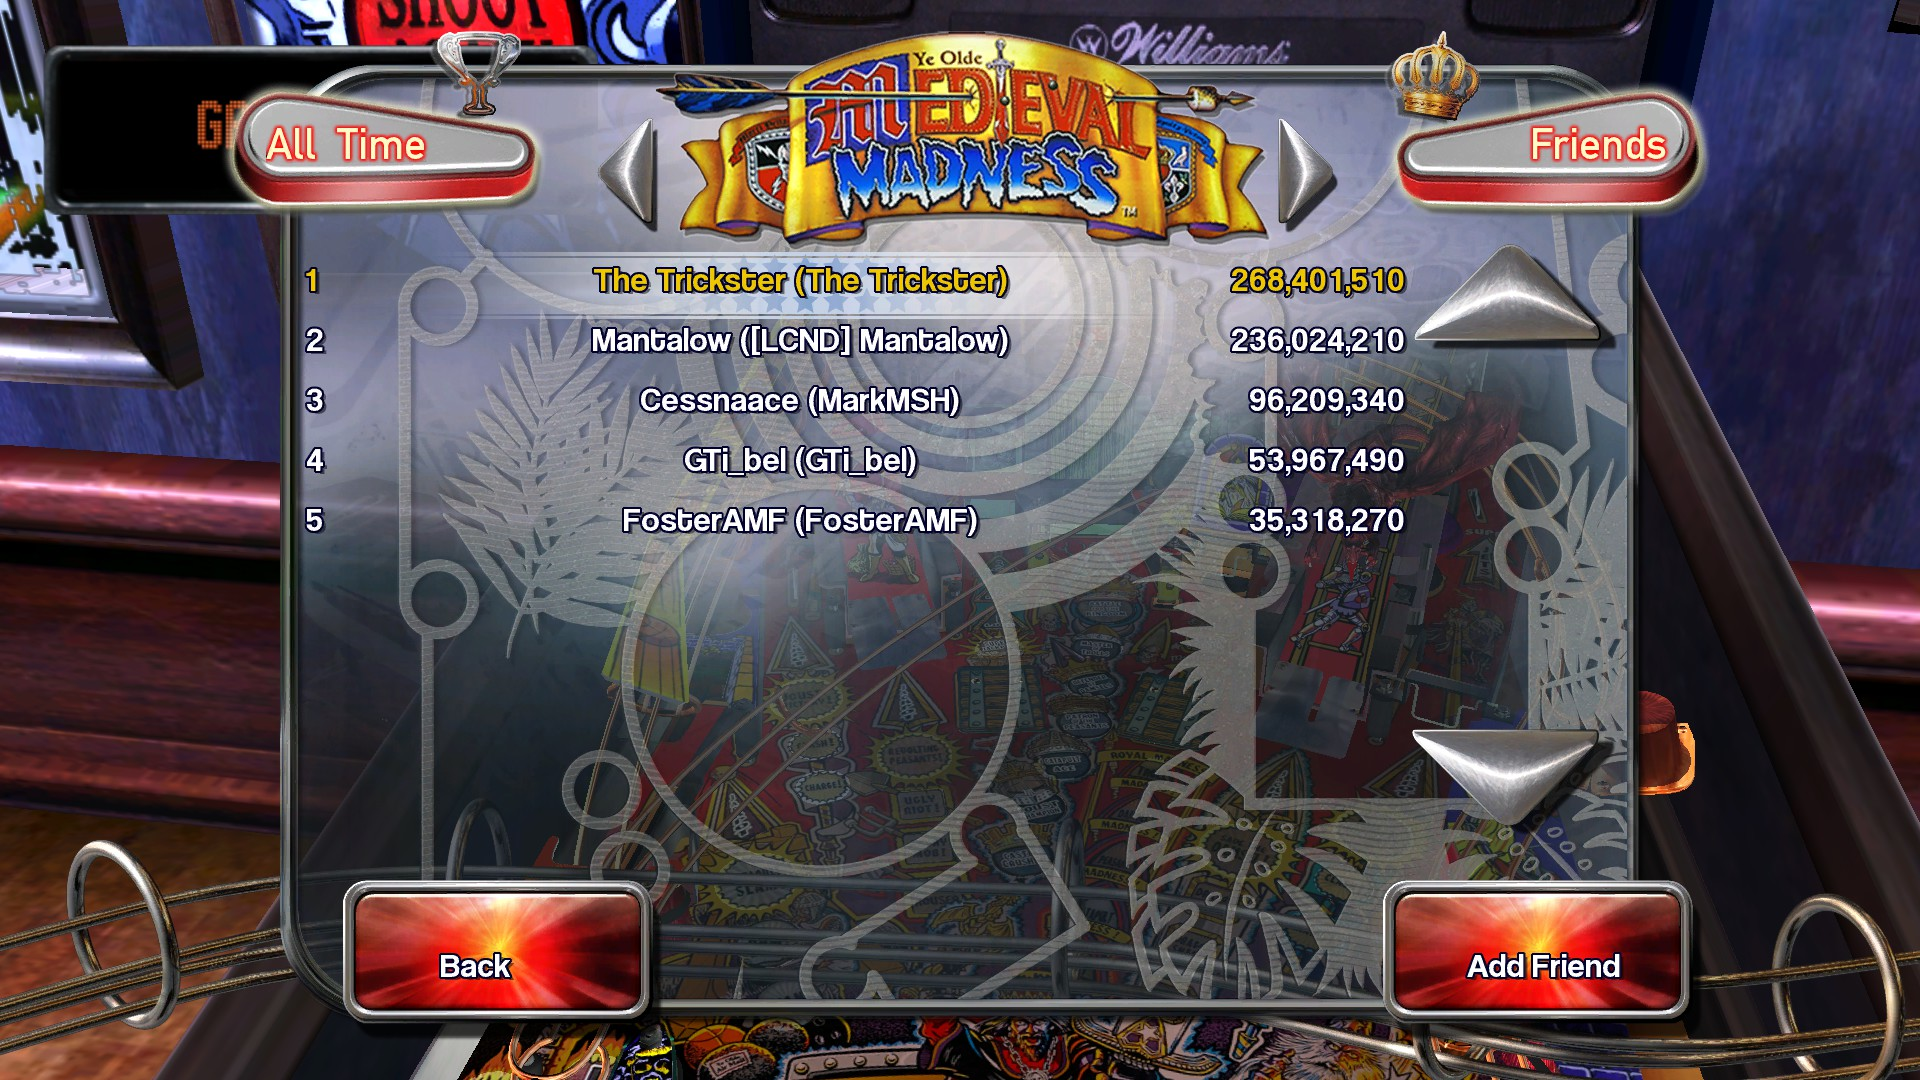 TheTrickster: Pinball Arcade: Medieval Madness (PC) 268,401,510 points on 2015-11-21 14:39:24